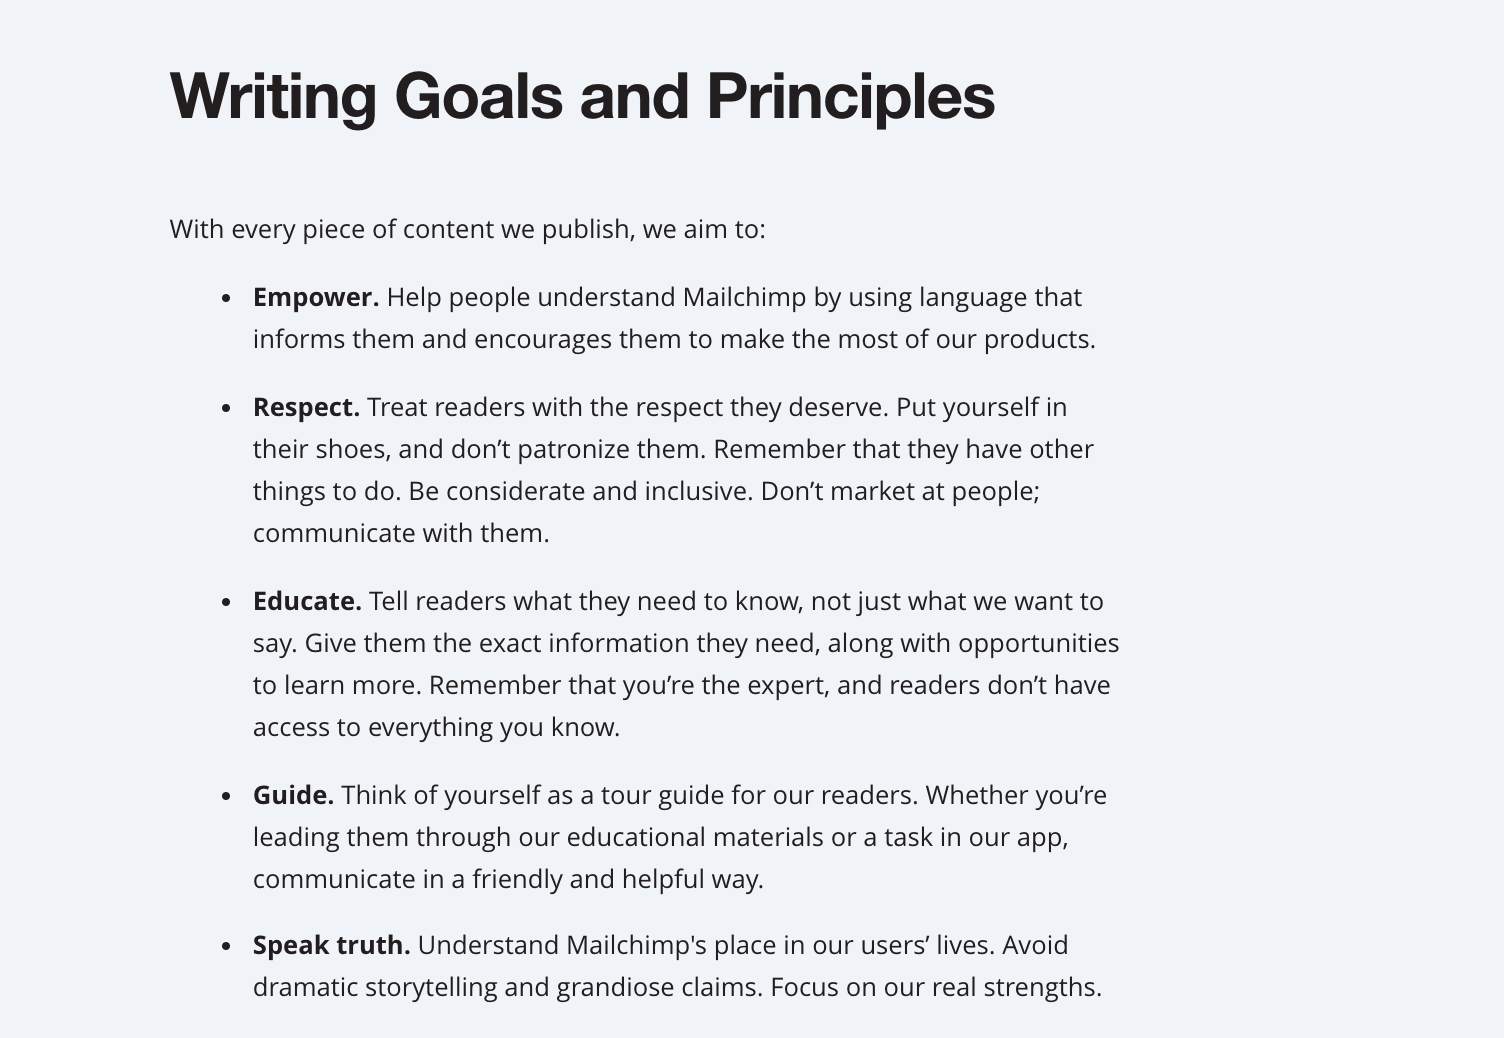 An image of the writing goals and principles from the Mailchimp content style guide